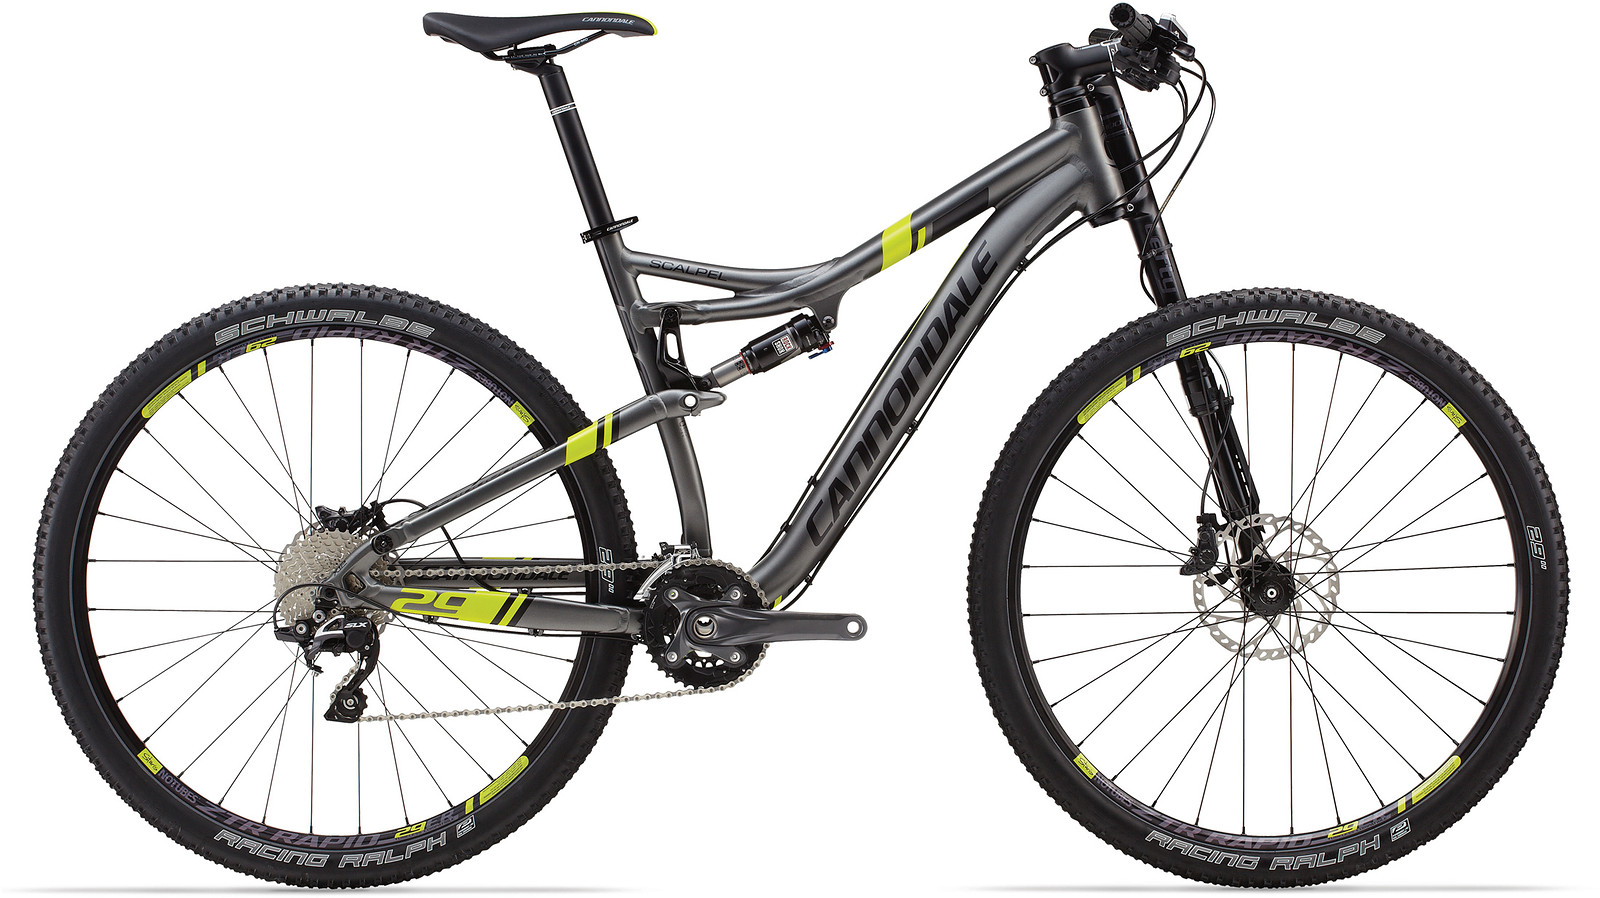 Cannondale Scalpel Carbon Black Inc. (Modelljahr 2016) bei